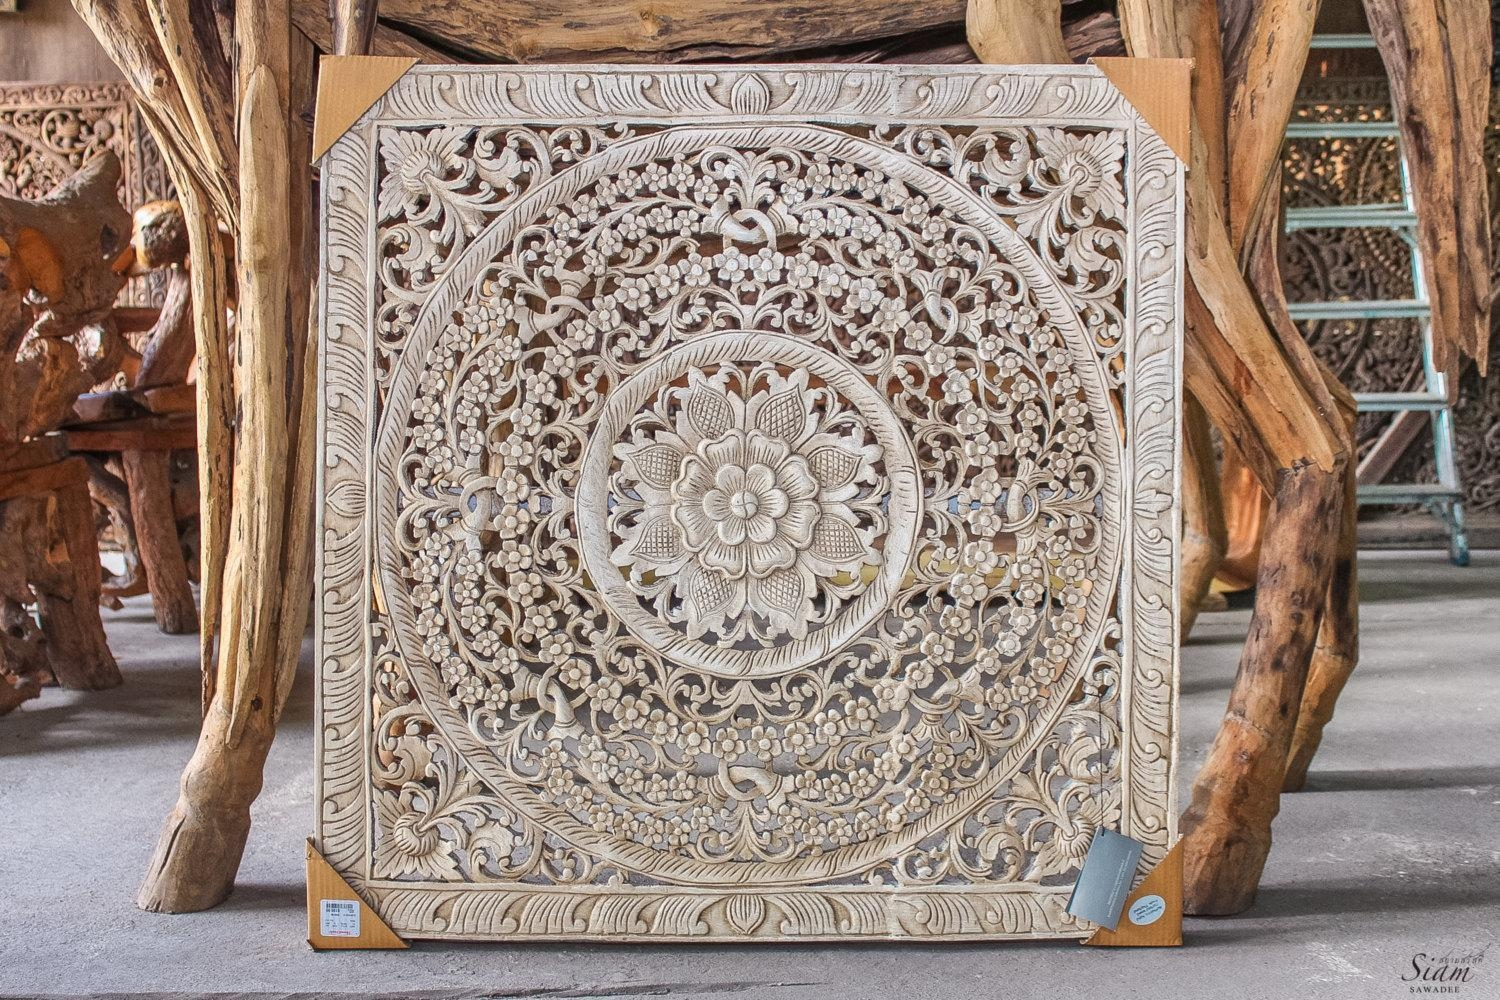 Carved Wood Wall Decor Gallery Of Art Carved Wood Wall Decor For Wood Panel Wall Art (Image 3 of 20)